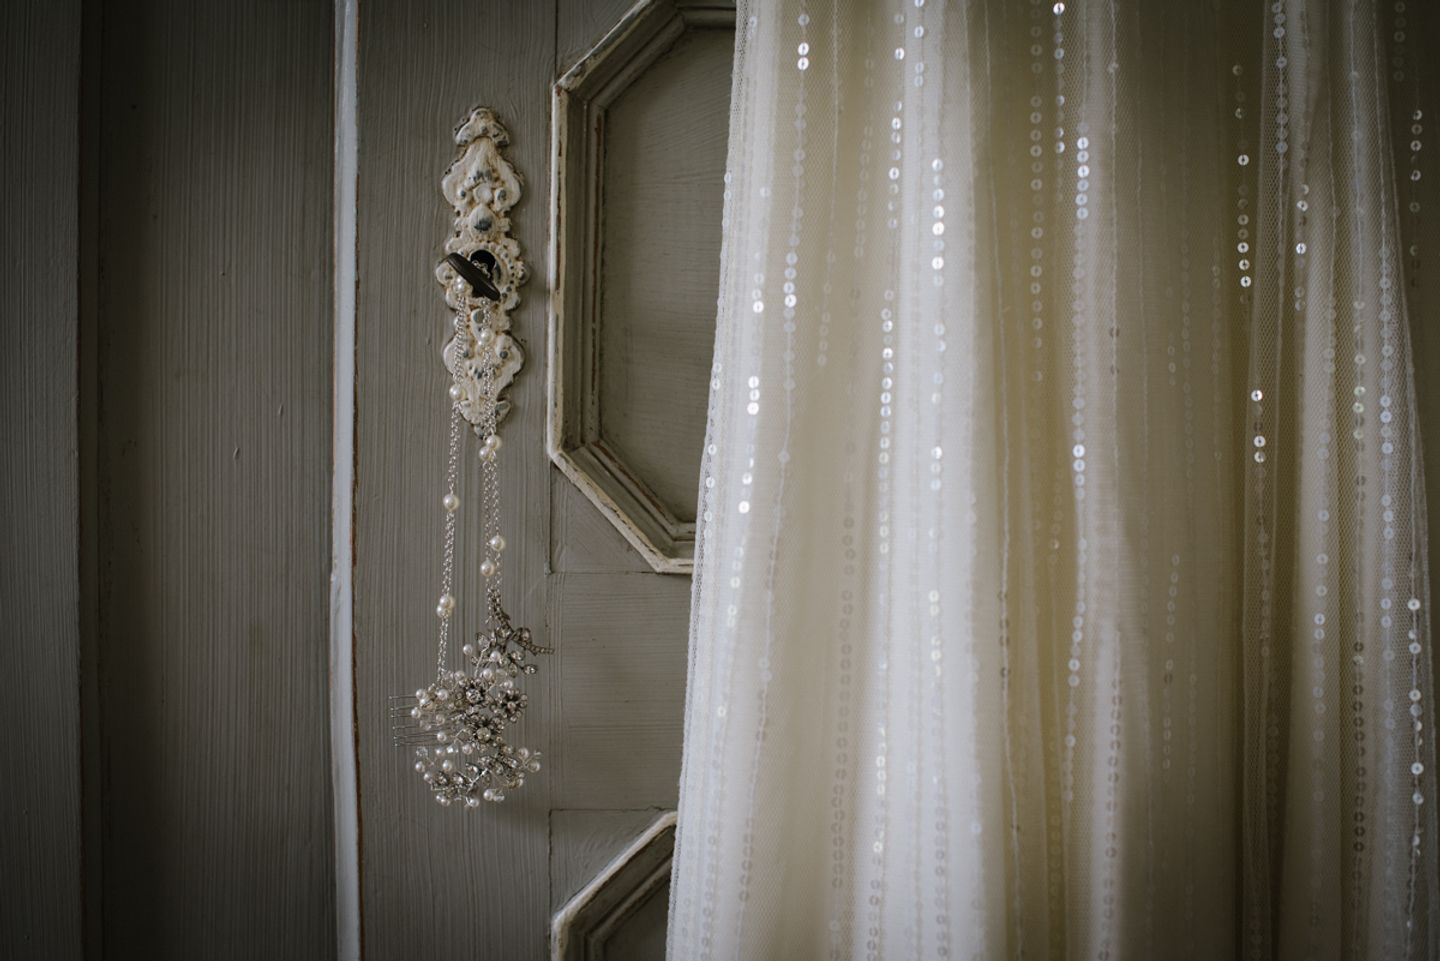 Art Deco bridal accessory hangs from ornate key next to details of subtle sequin wedding dress